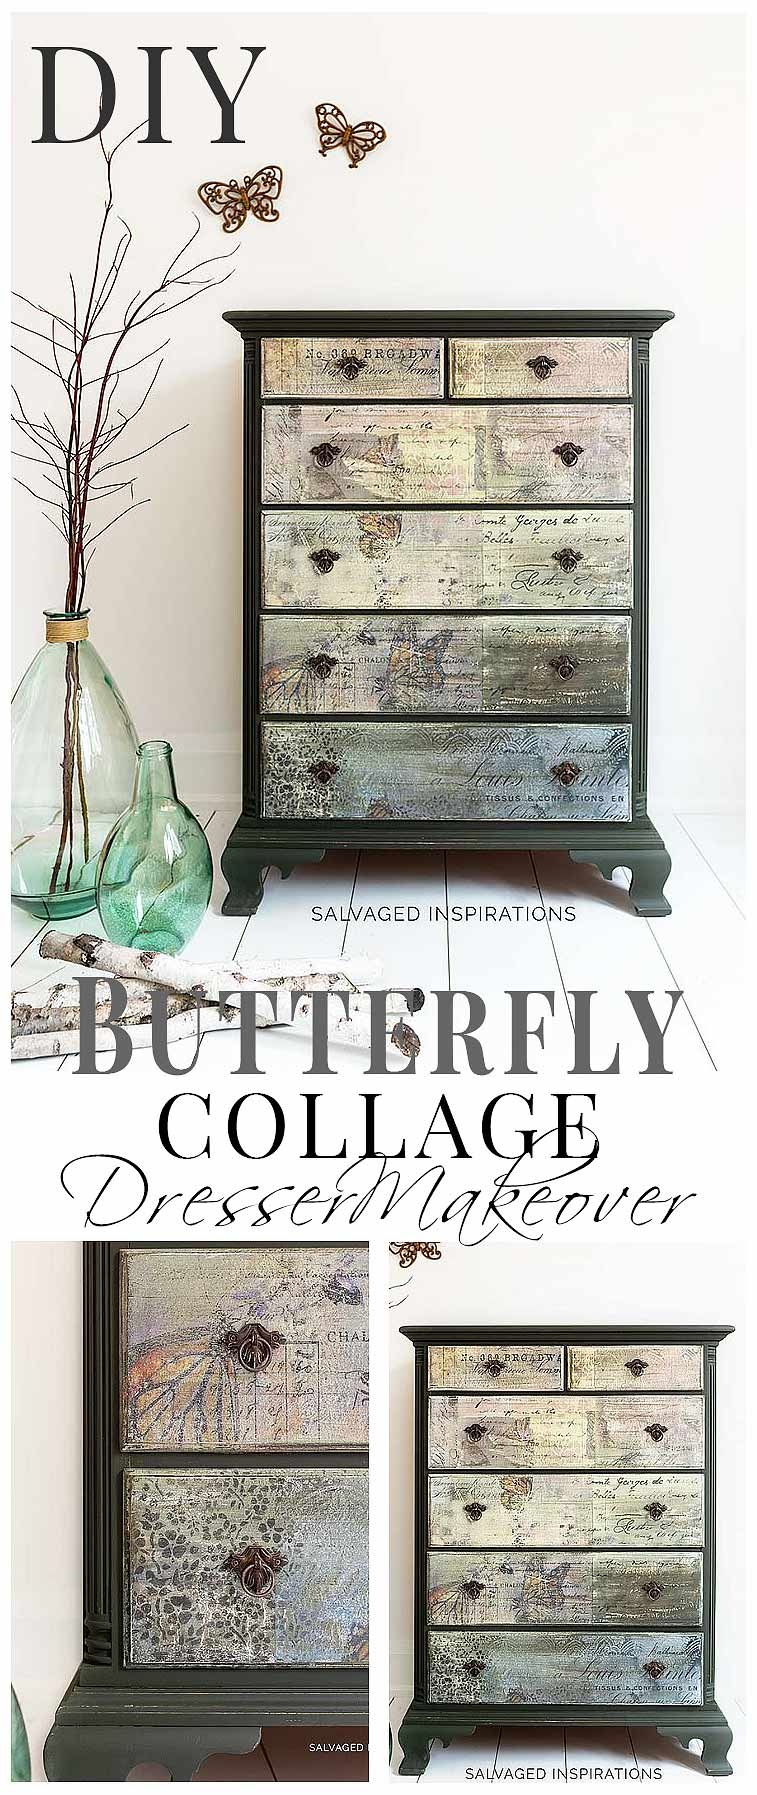 Butterfly Collage Dresser Makeover_Salvaged Inspirations